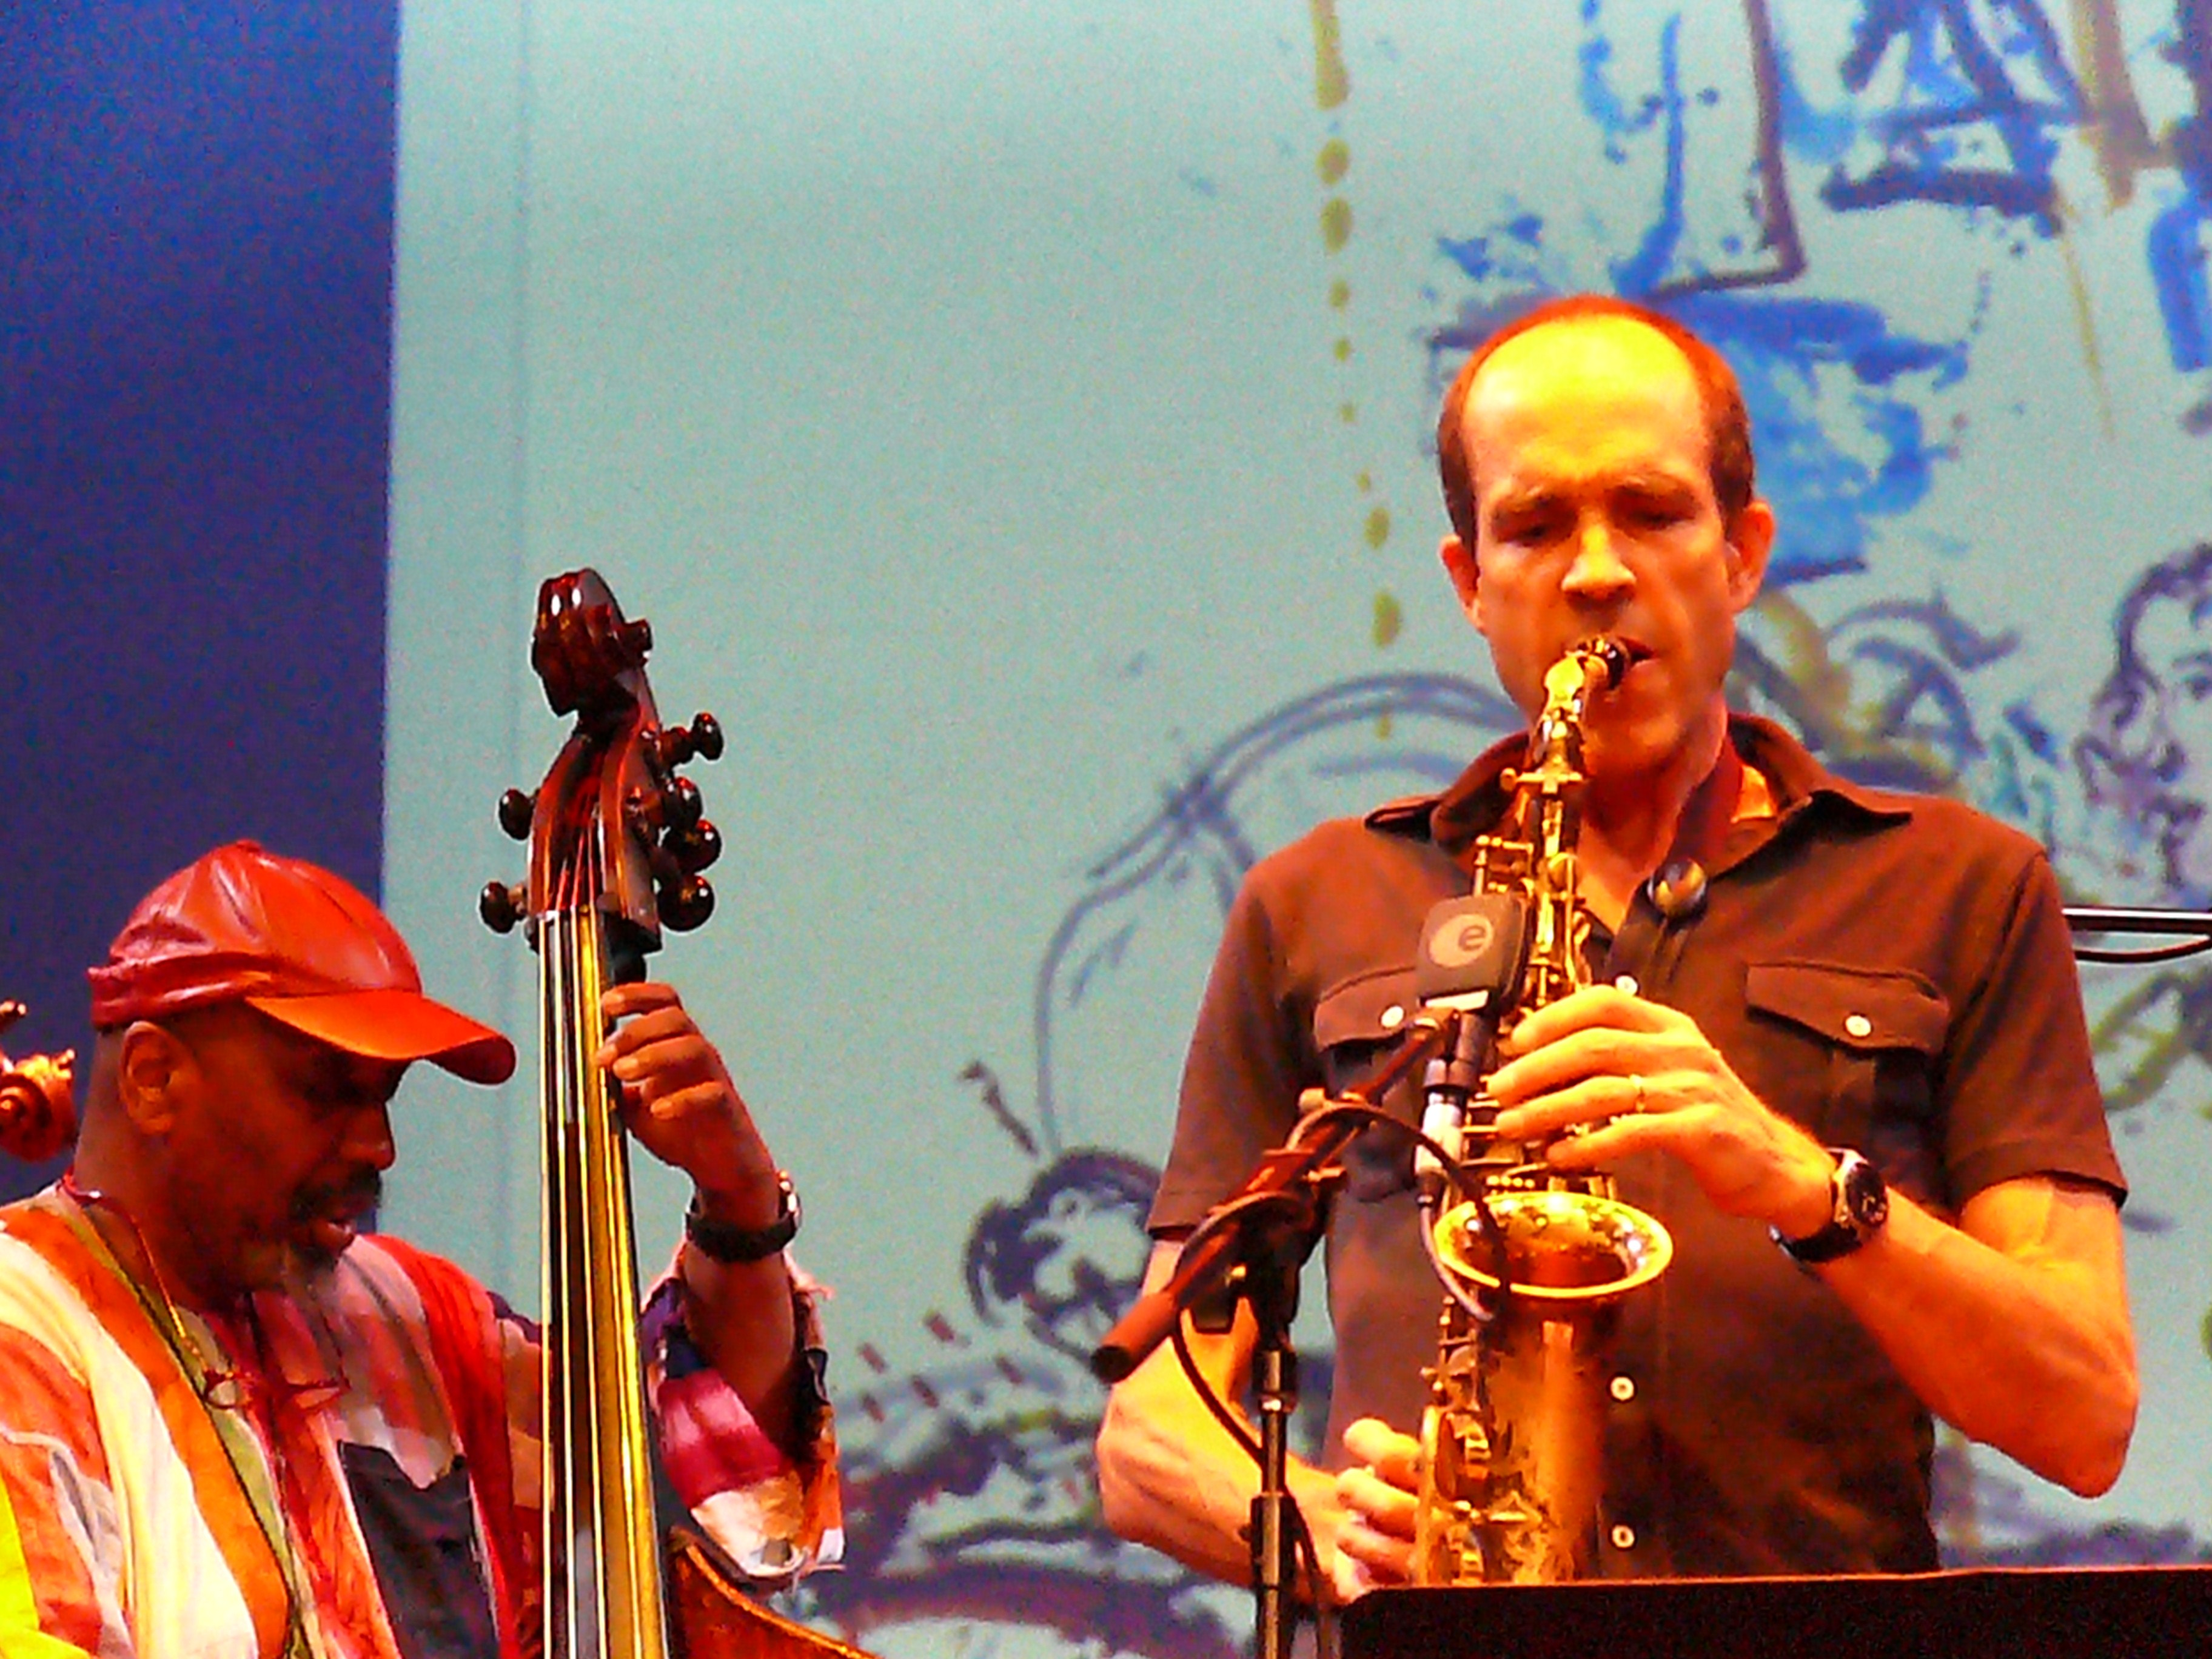 William Parker and Rob Brown at Vision Festival 2011